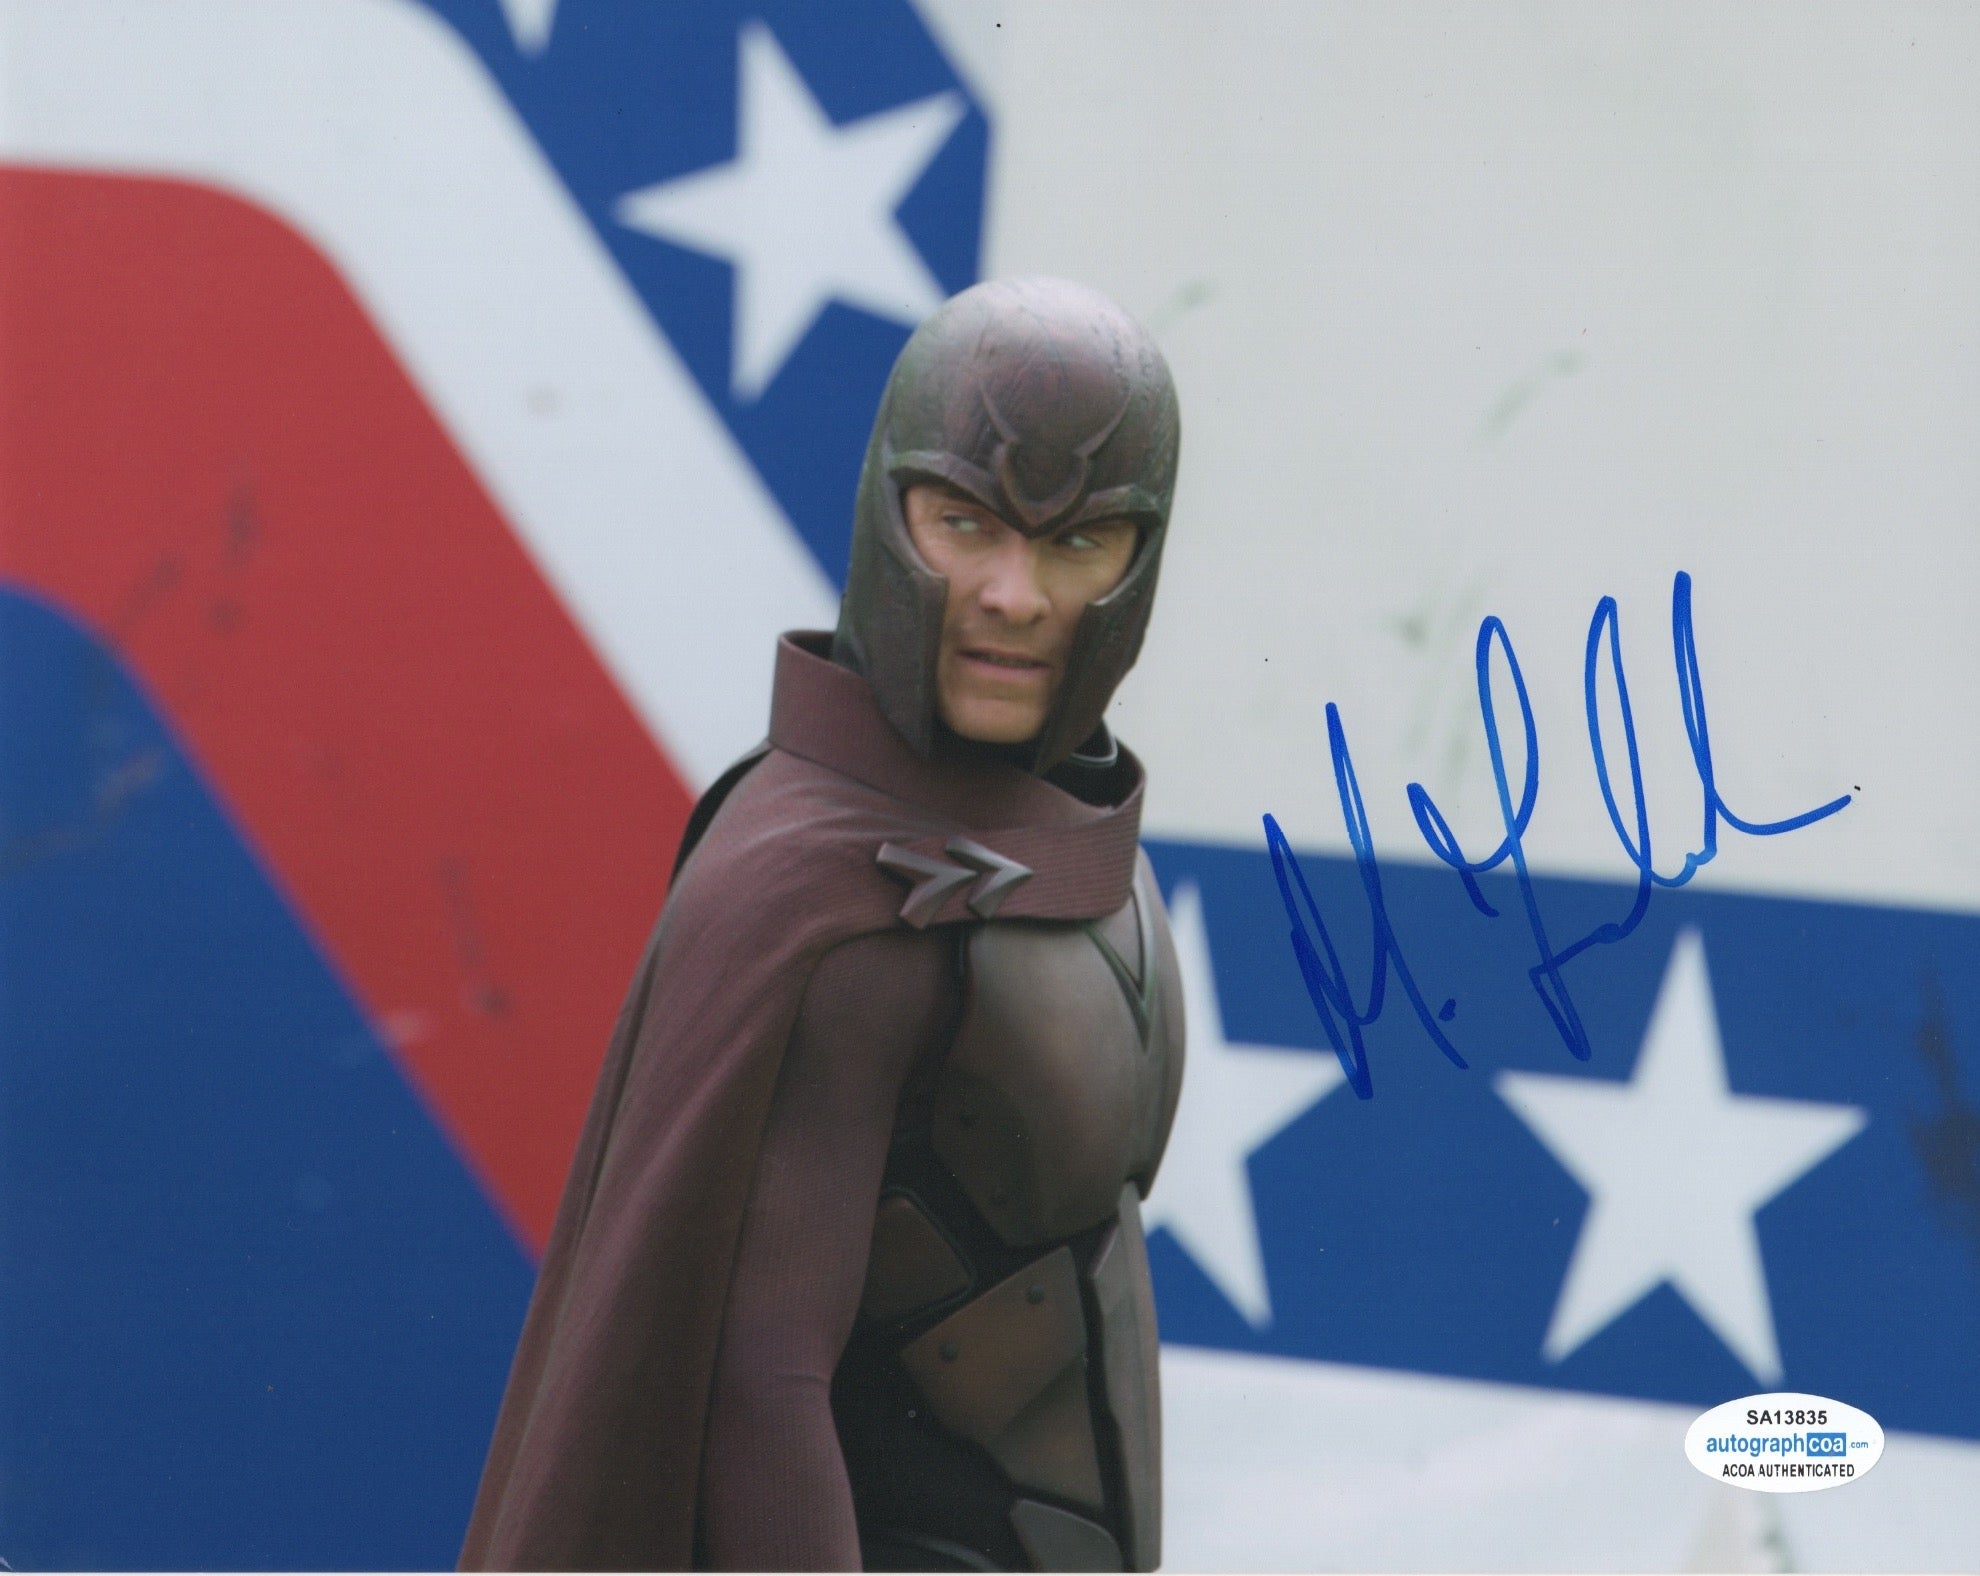 Michael Fassbender XMen Magneto Signed Autograph 8x10 Photo ACOA - Outlaw Hobbies Authentic Autographs